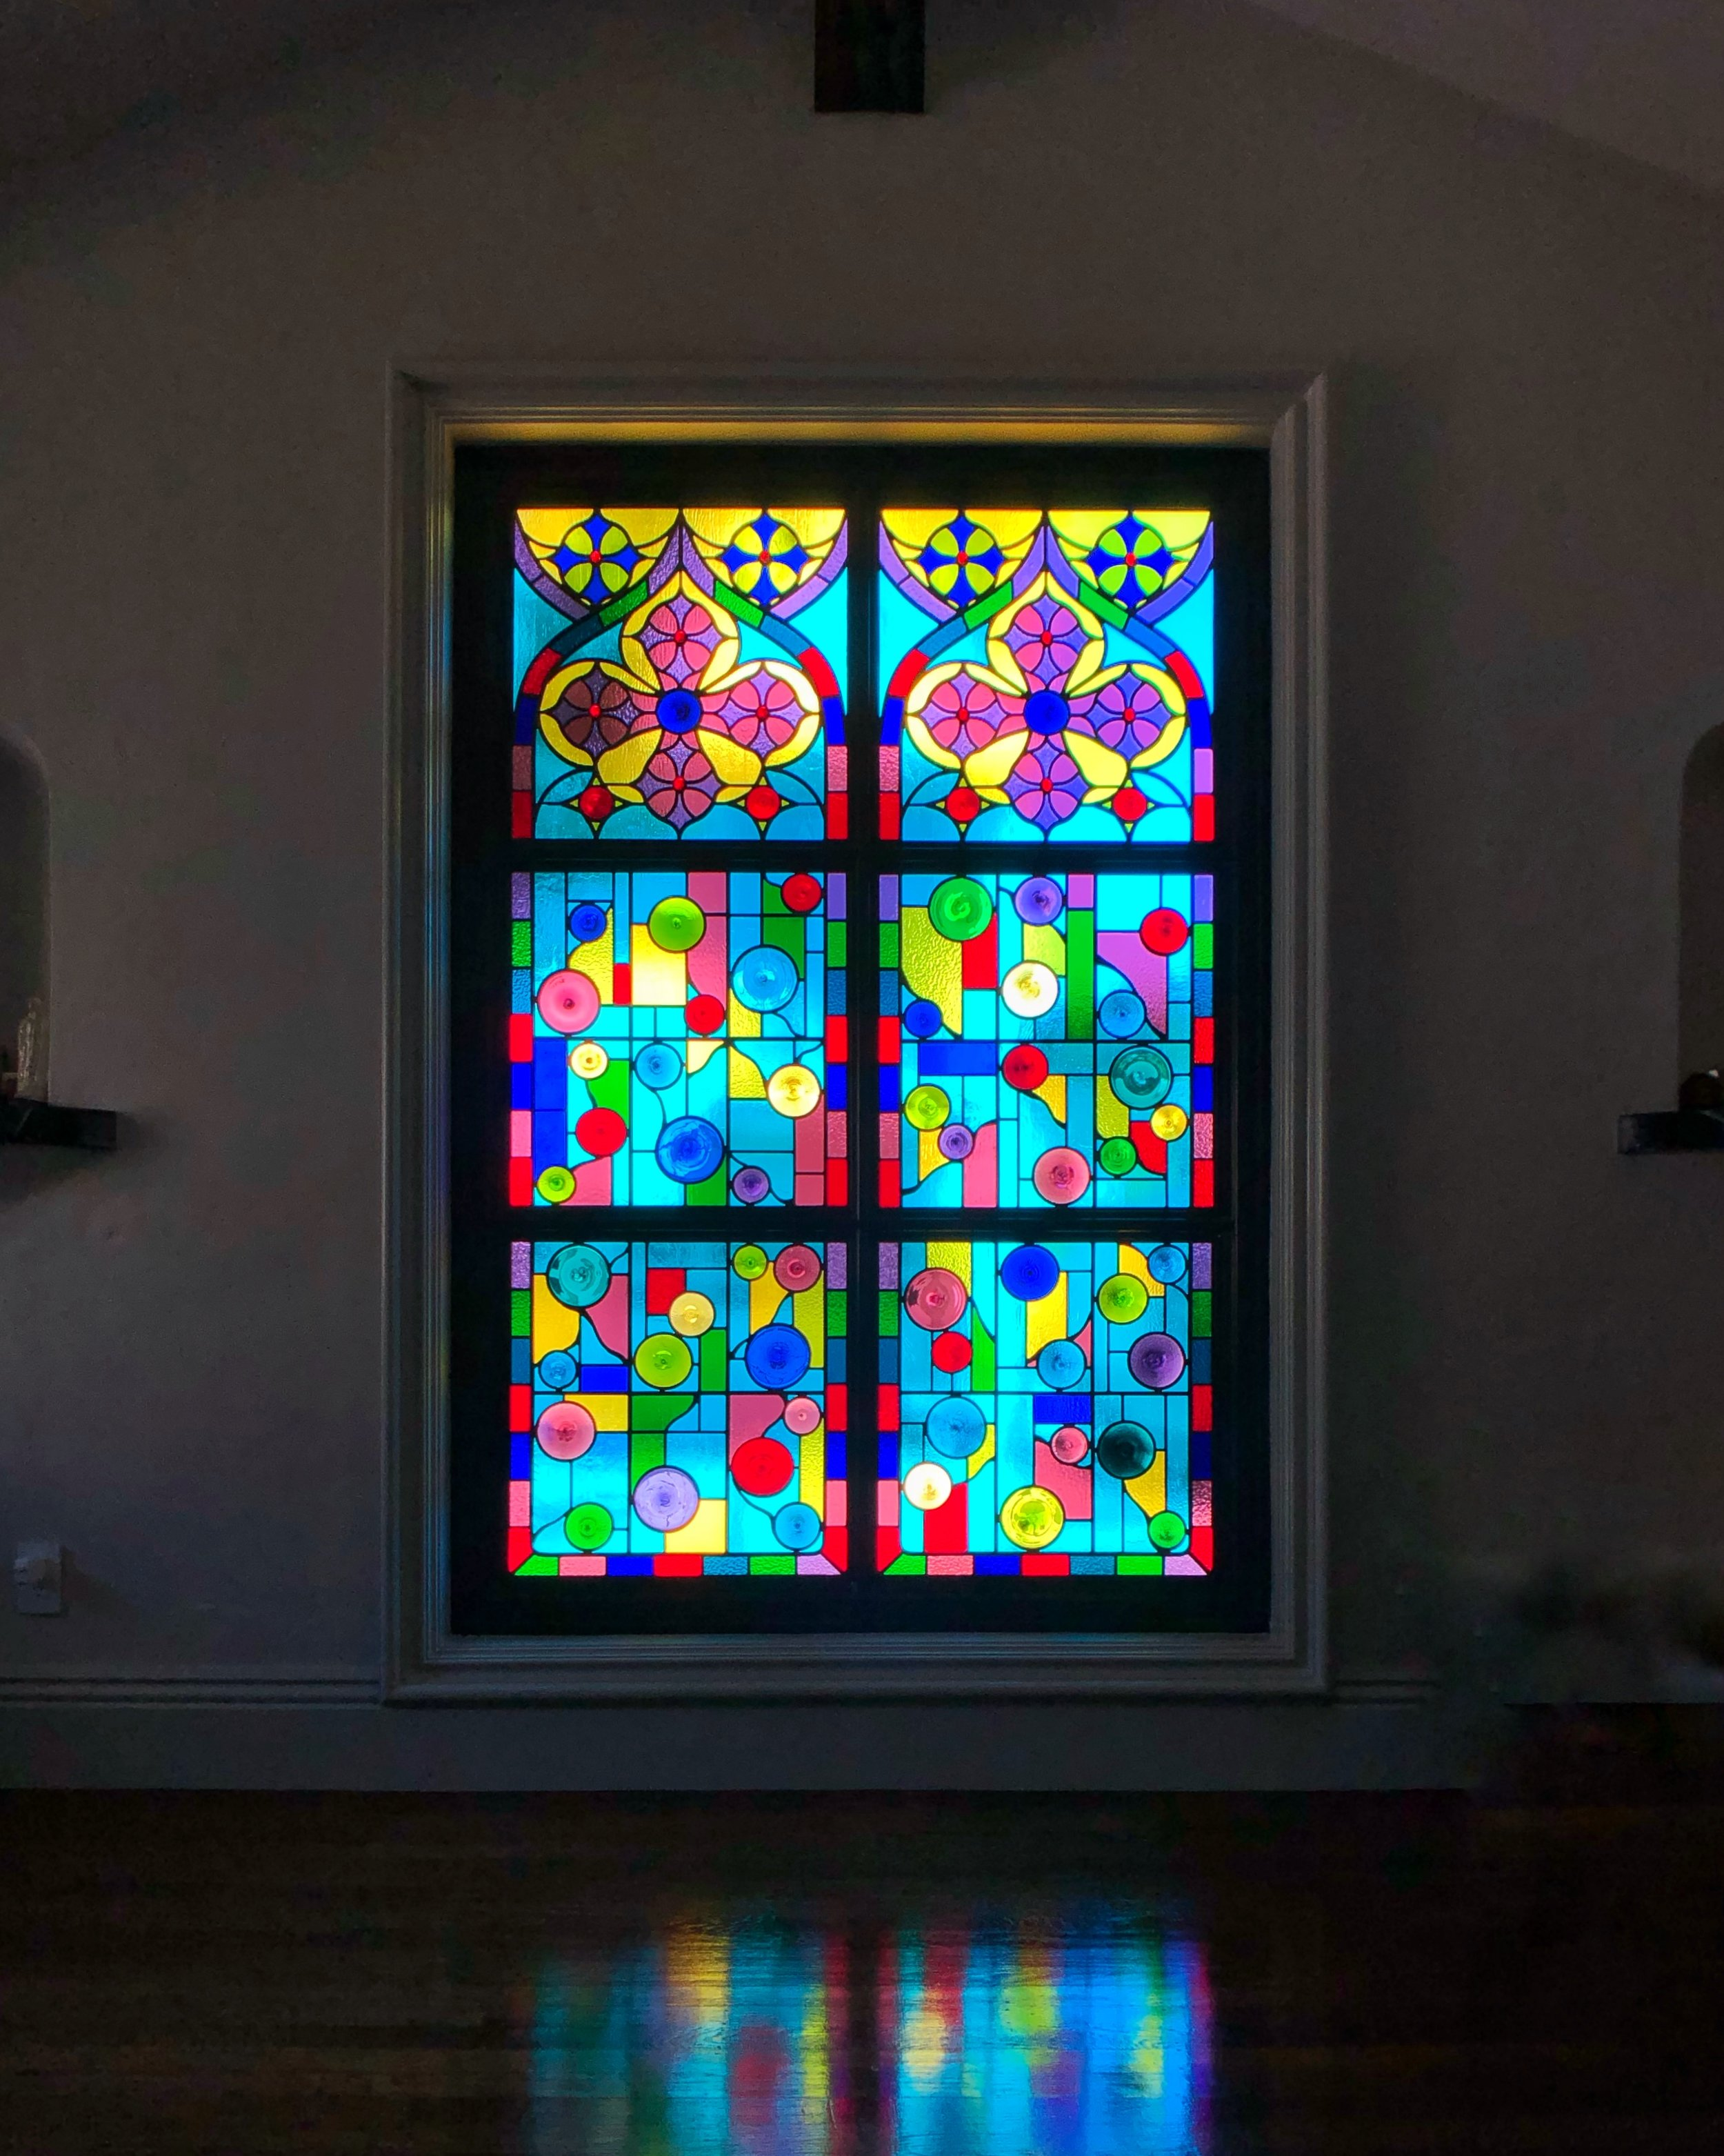 cathedral window st dominics catholic church gothic arch colorful french design stained glass legacy glass studios custom leaded glass wissmach kokomo mouth blown spun rondels privacy window family room reflection.jpg